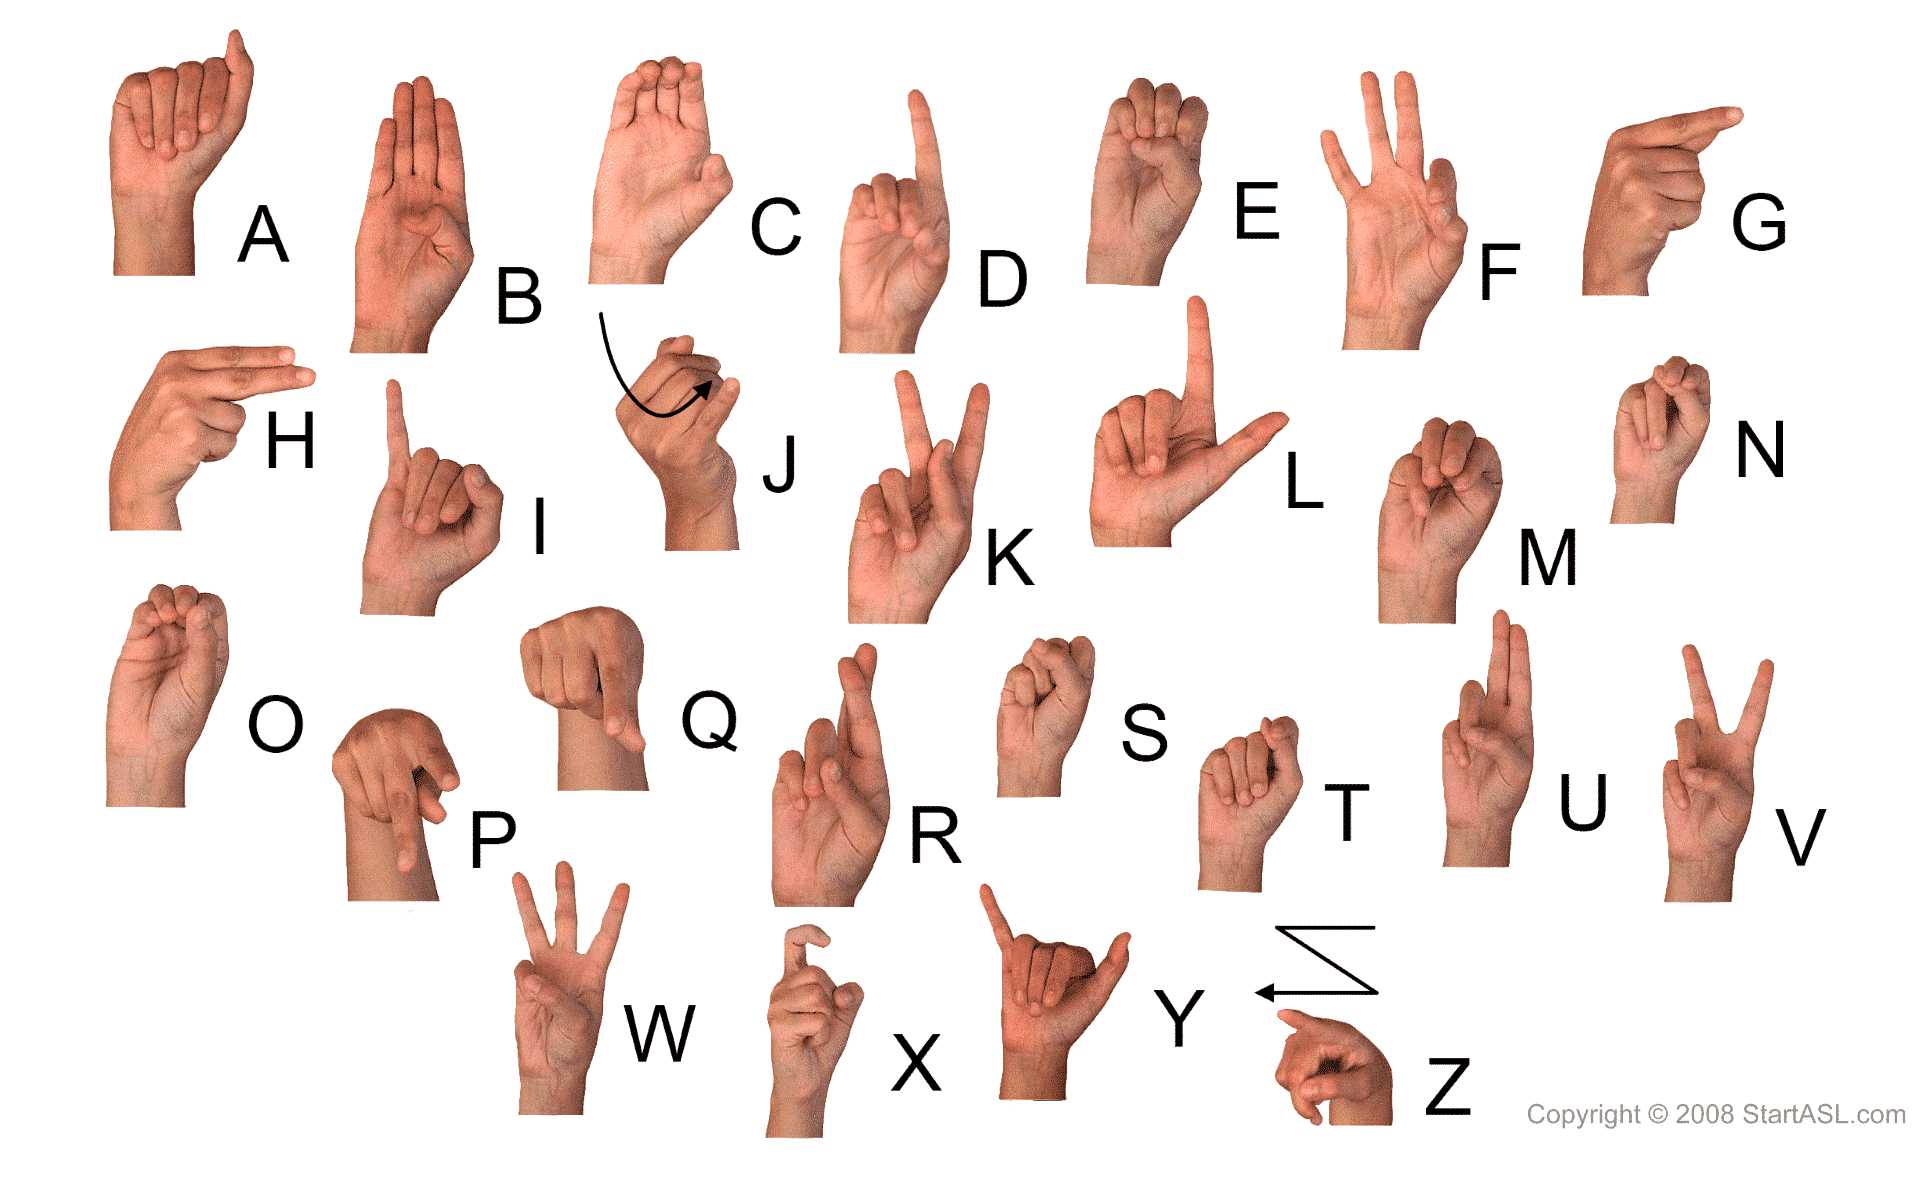 Sign Language Alphabet | 6 Free Downloads to Learn It Fast   Start ASL